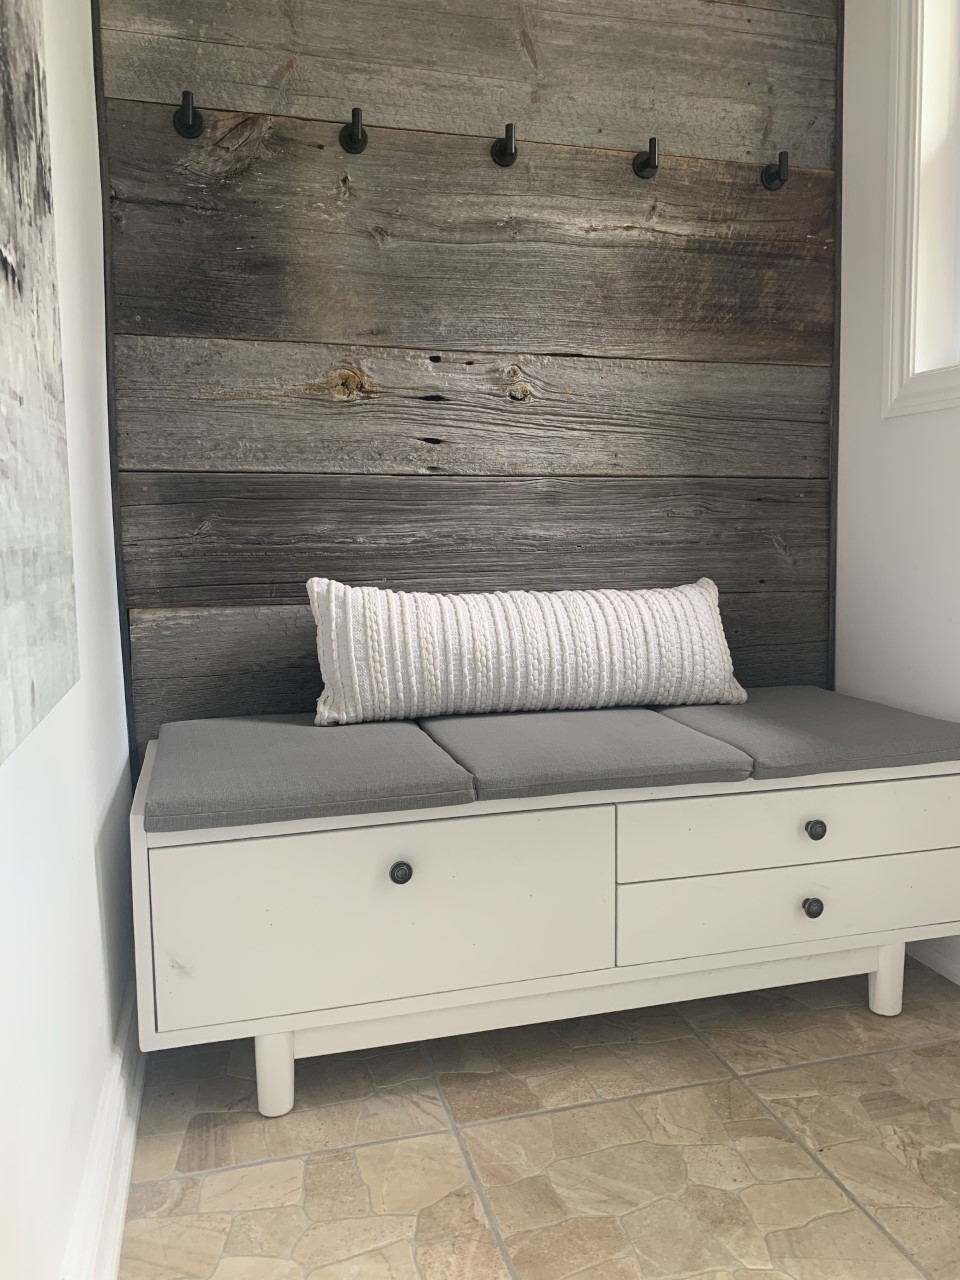 Entry bench with drawers